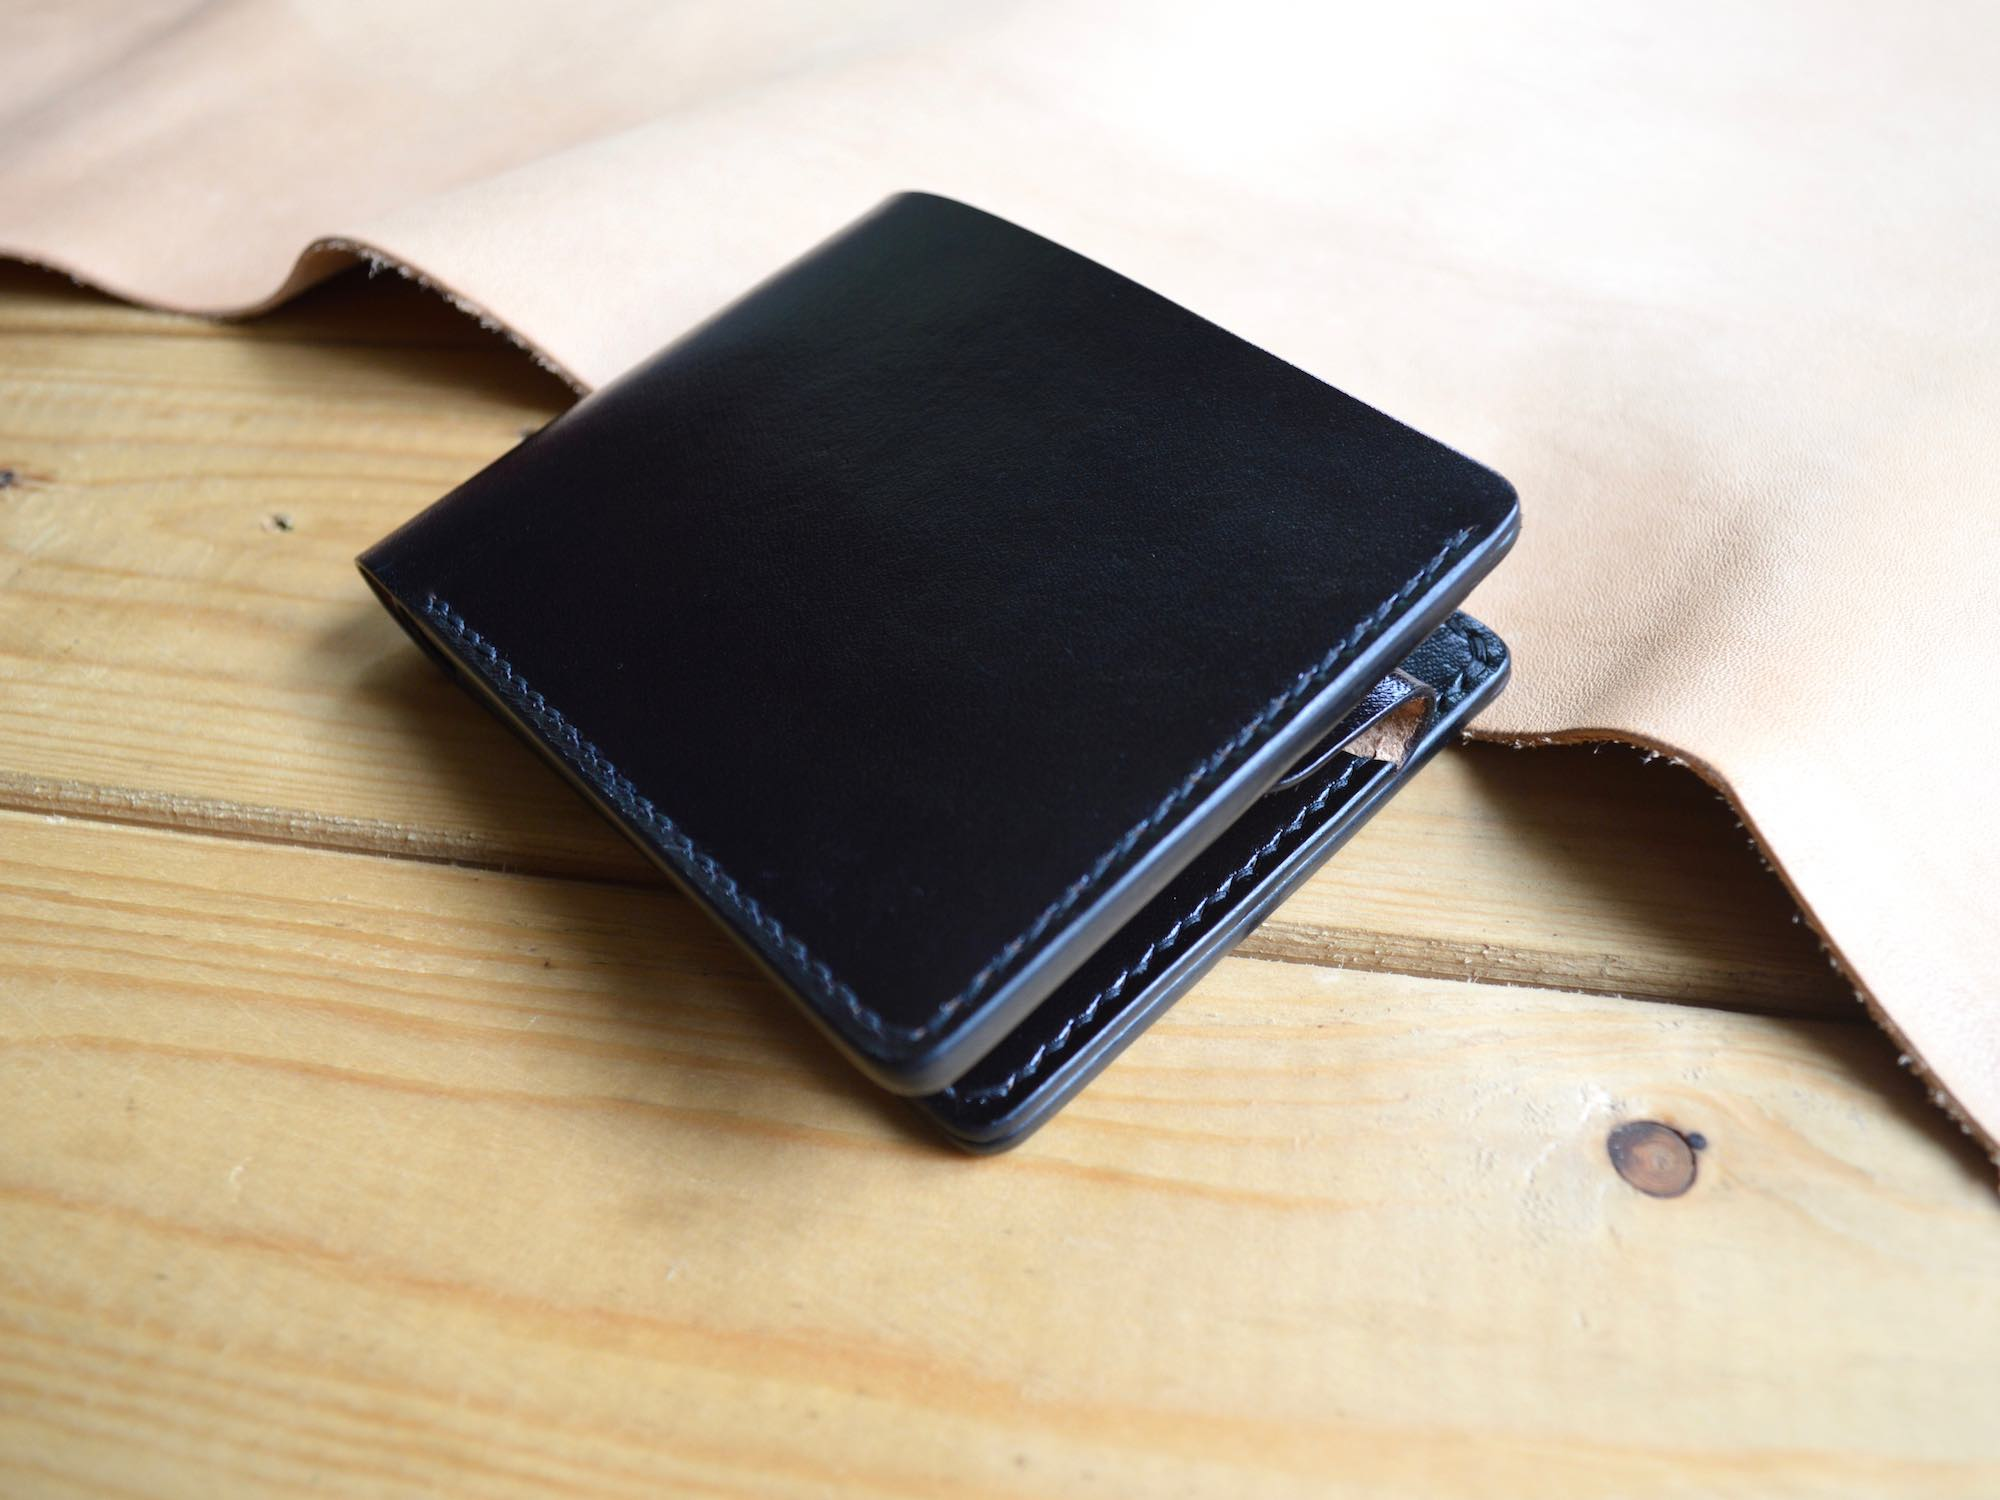 Full Grain Leather Wallet With Coin Pocket. Handmade with Black Italian vegetable tanned leather